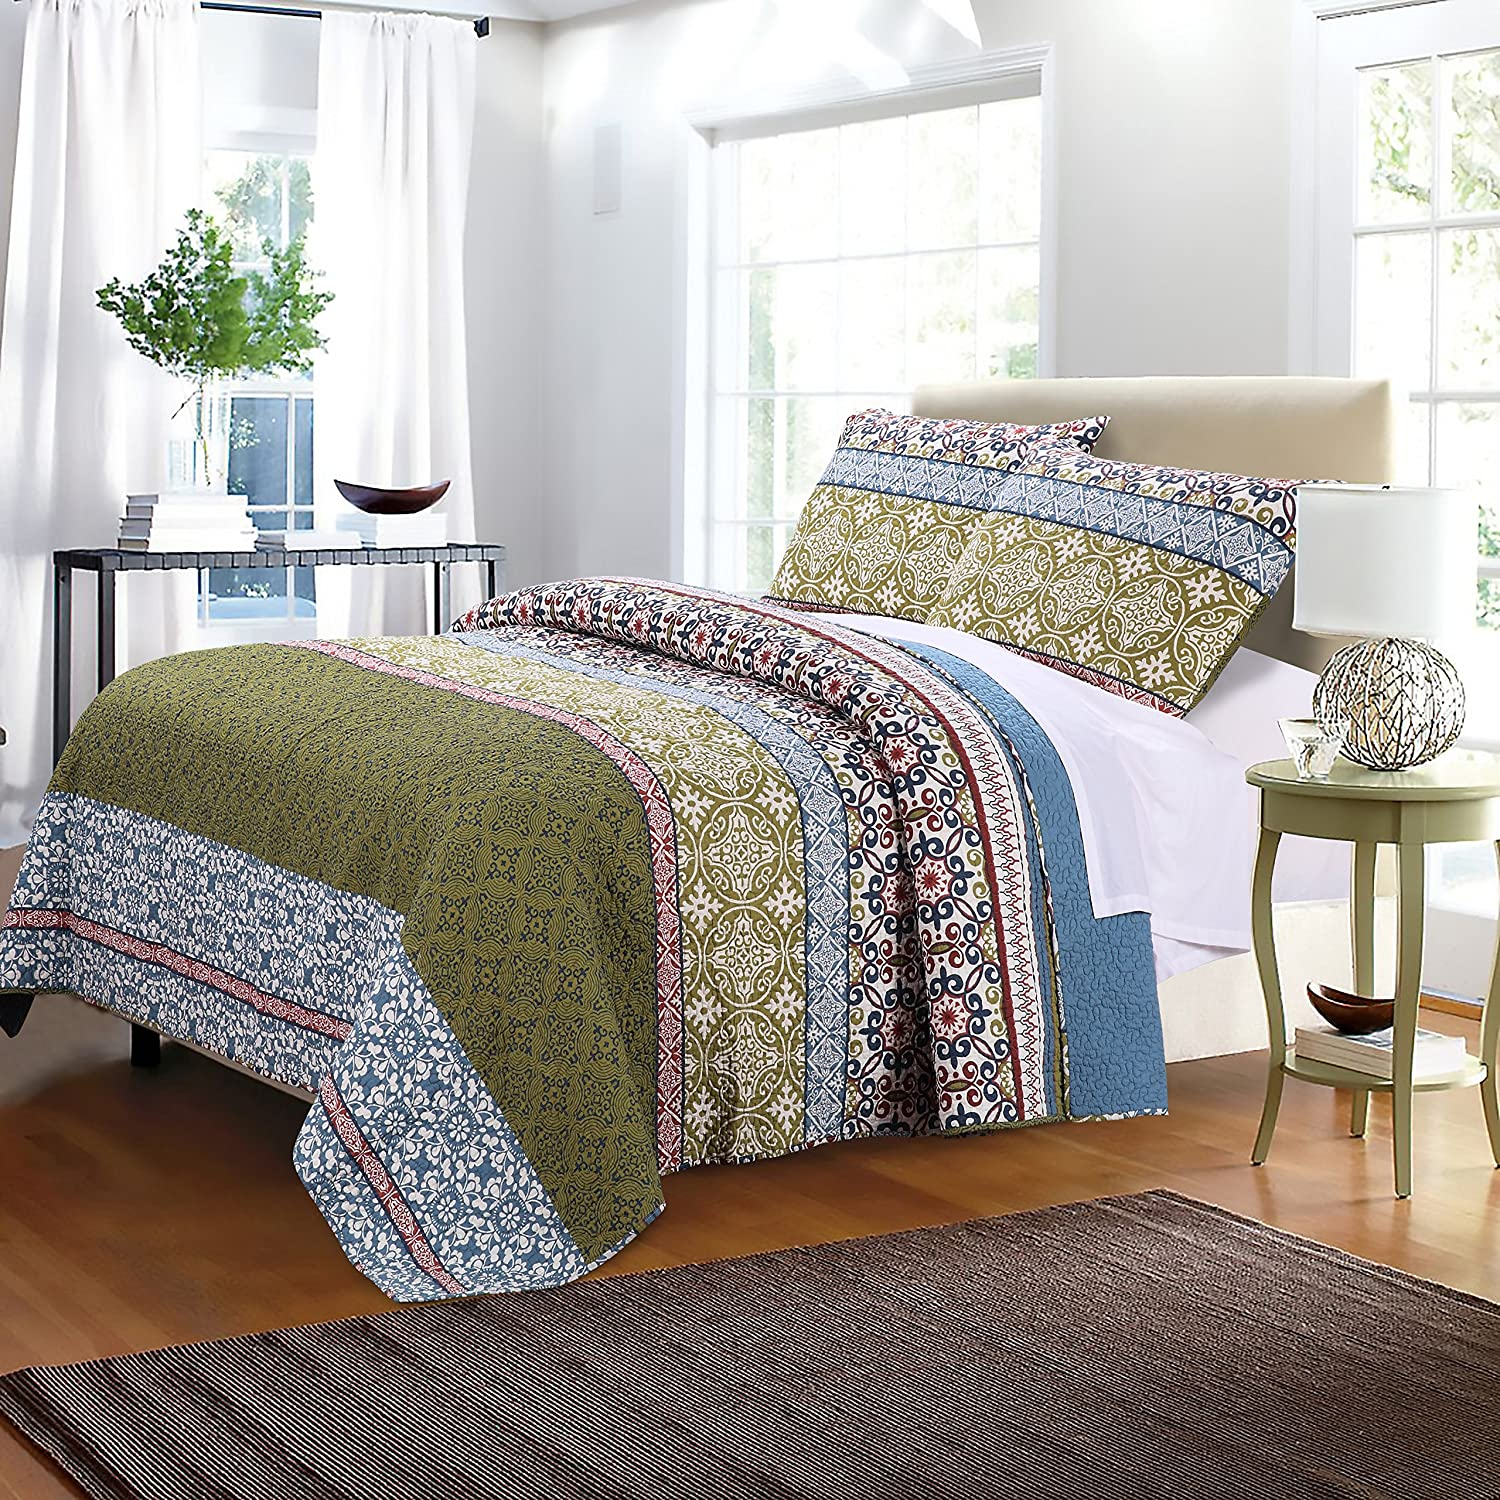 Greenland Home 3 Piece Shangri-La Quilt Set, Full/Queen